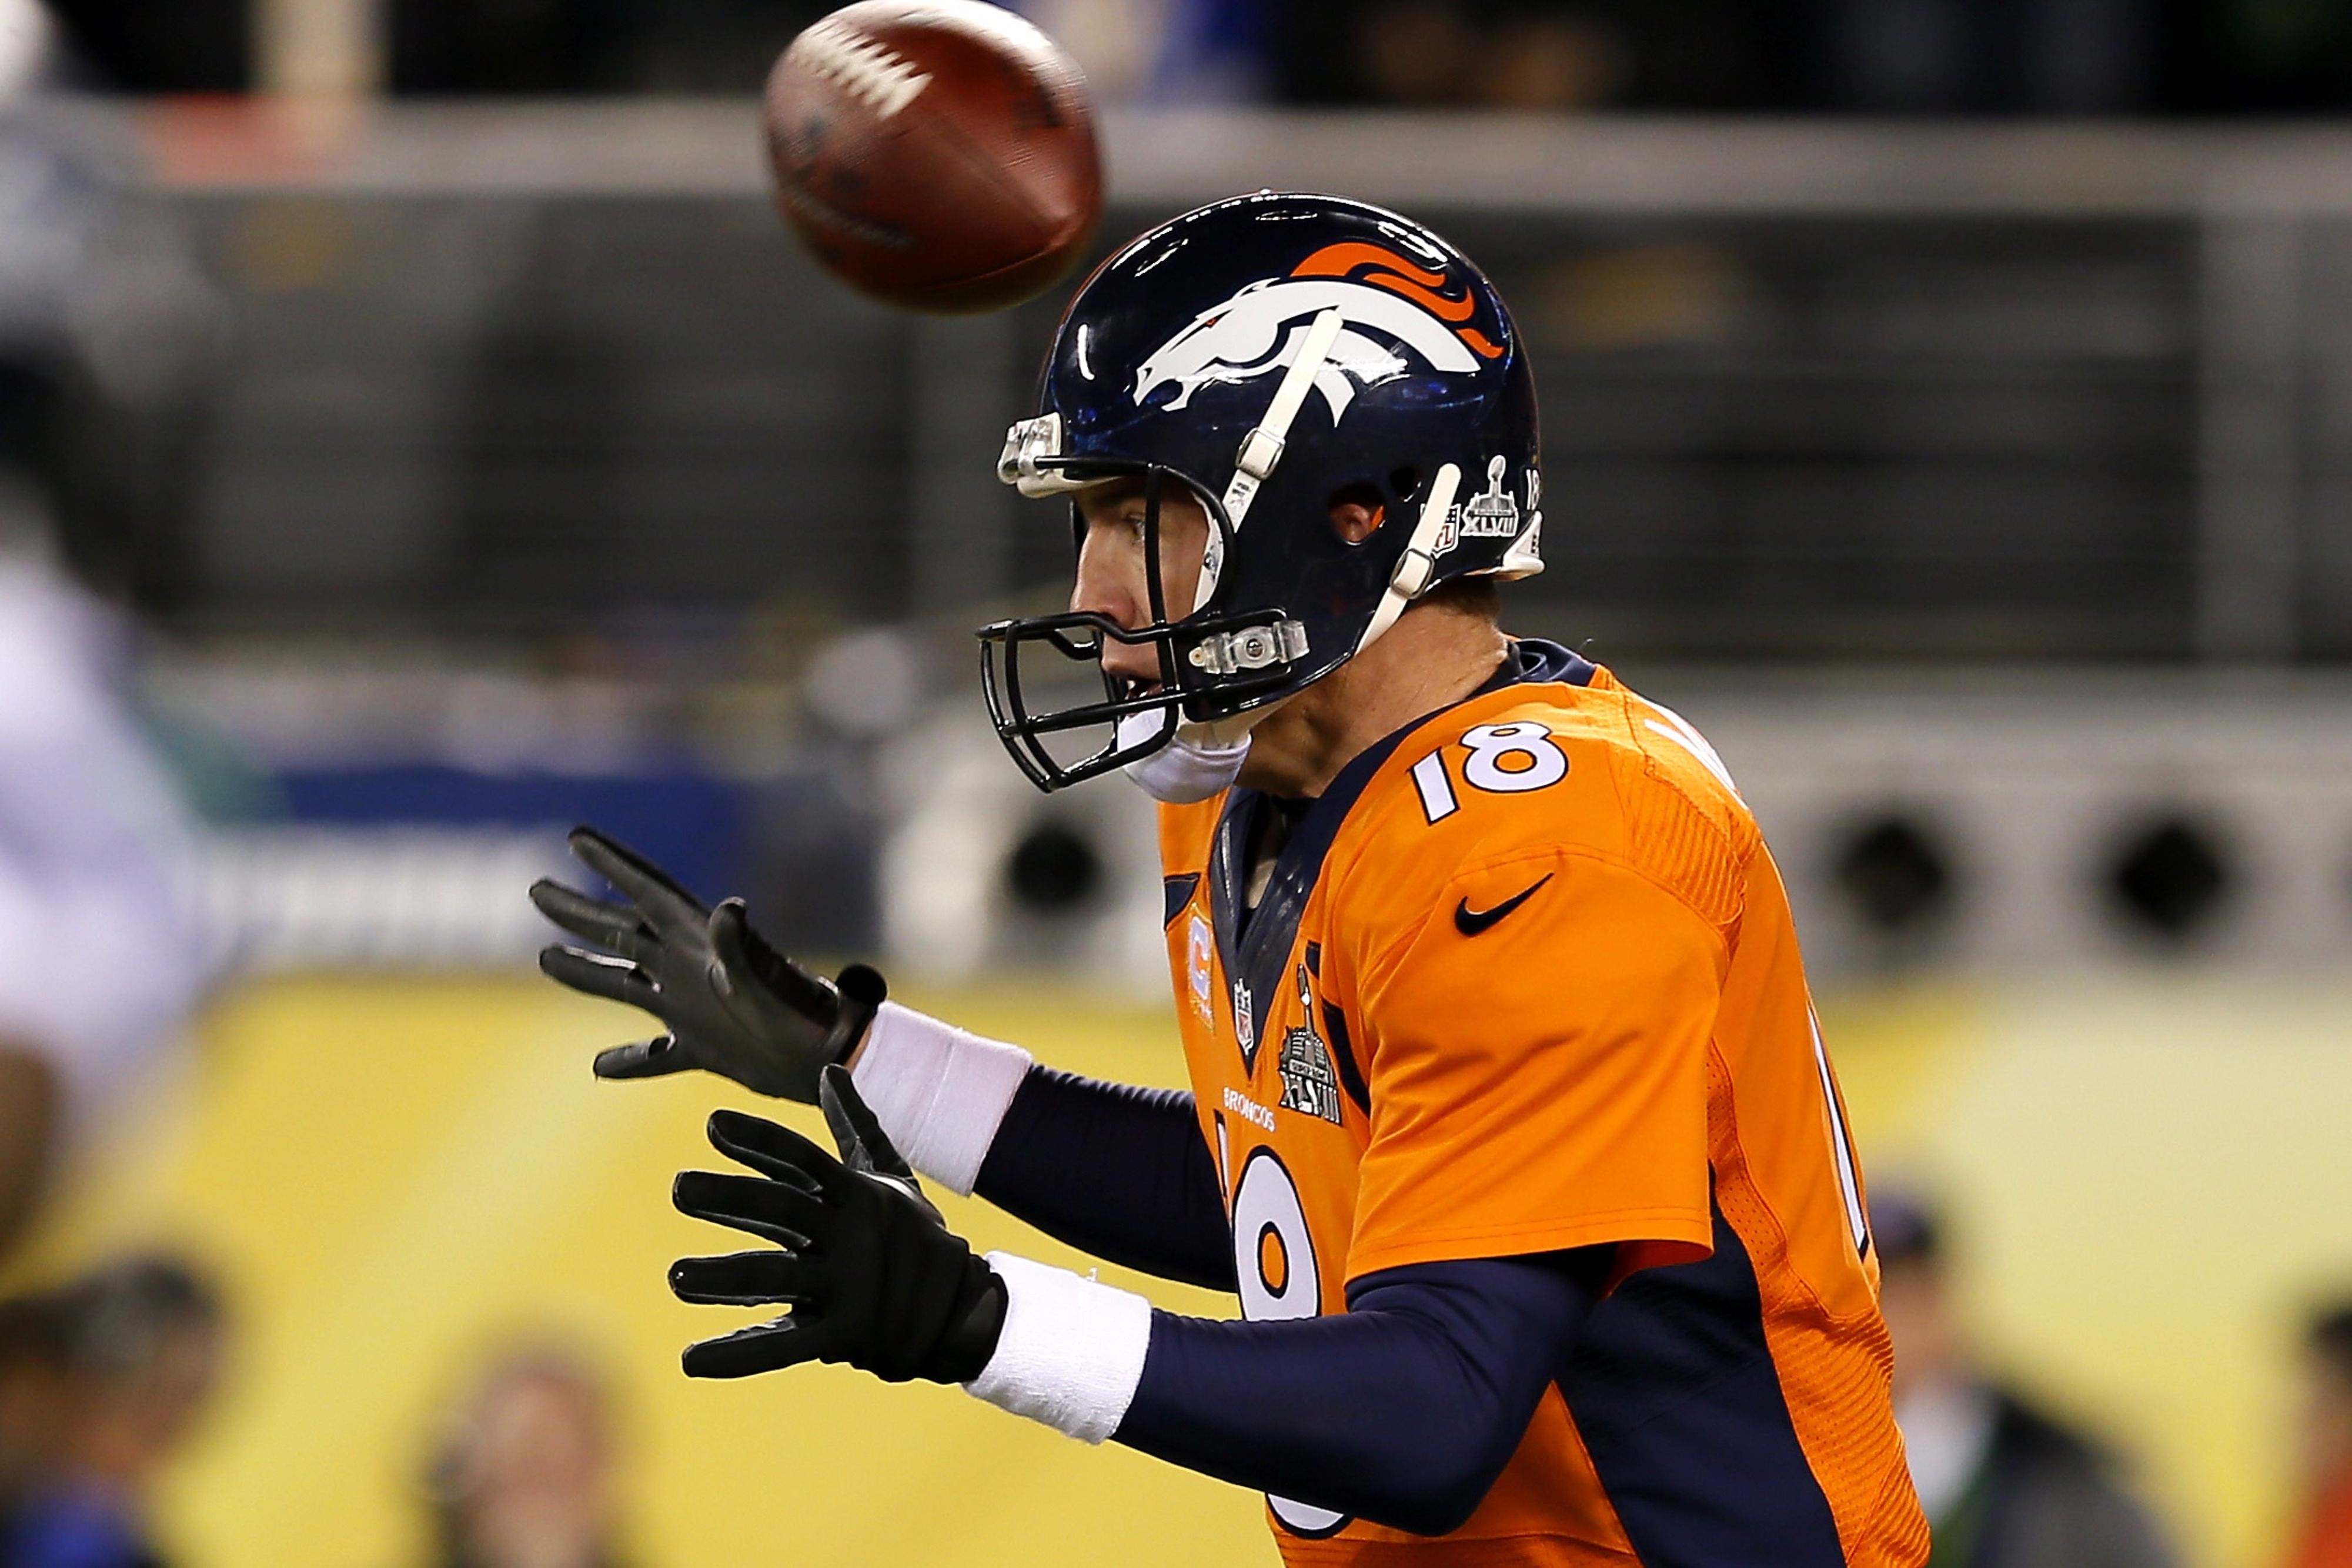 Peyton Manning and the terrible, horrible, no good, very bad Super Bowl